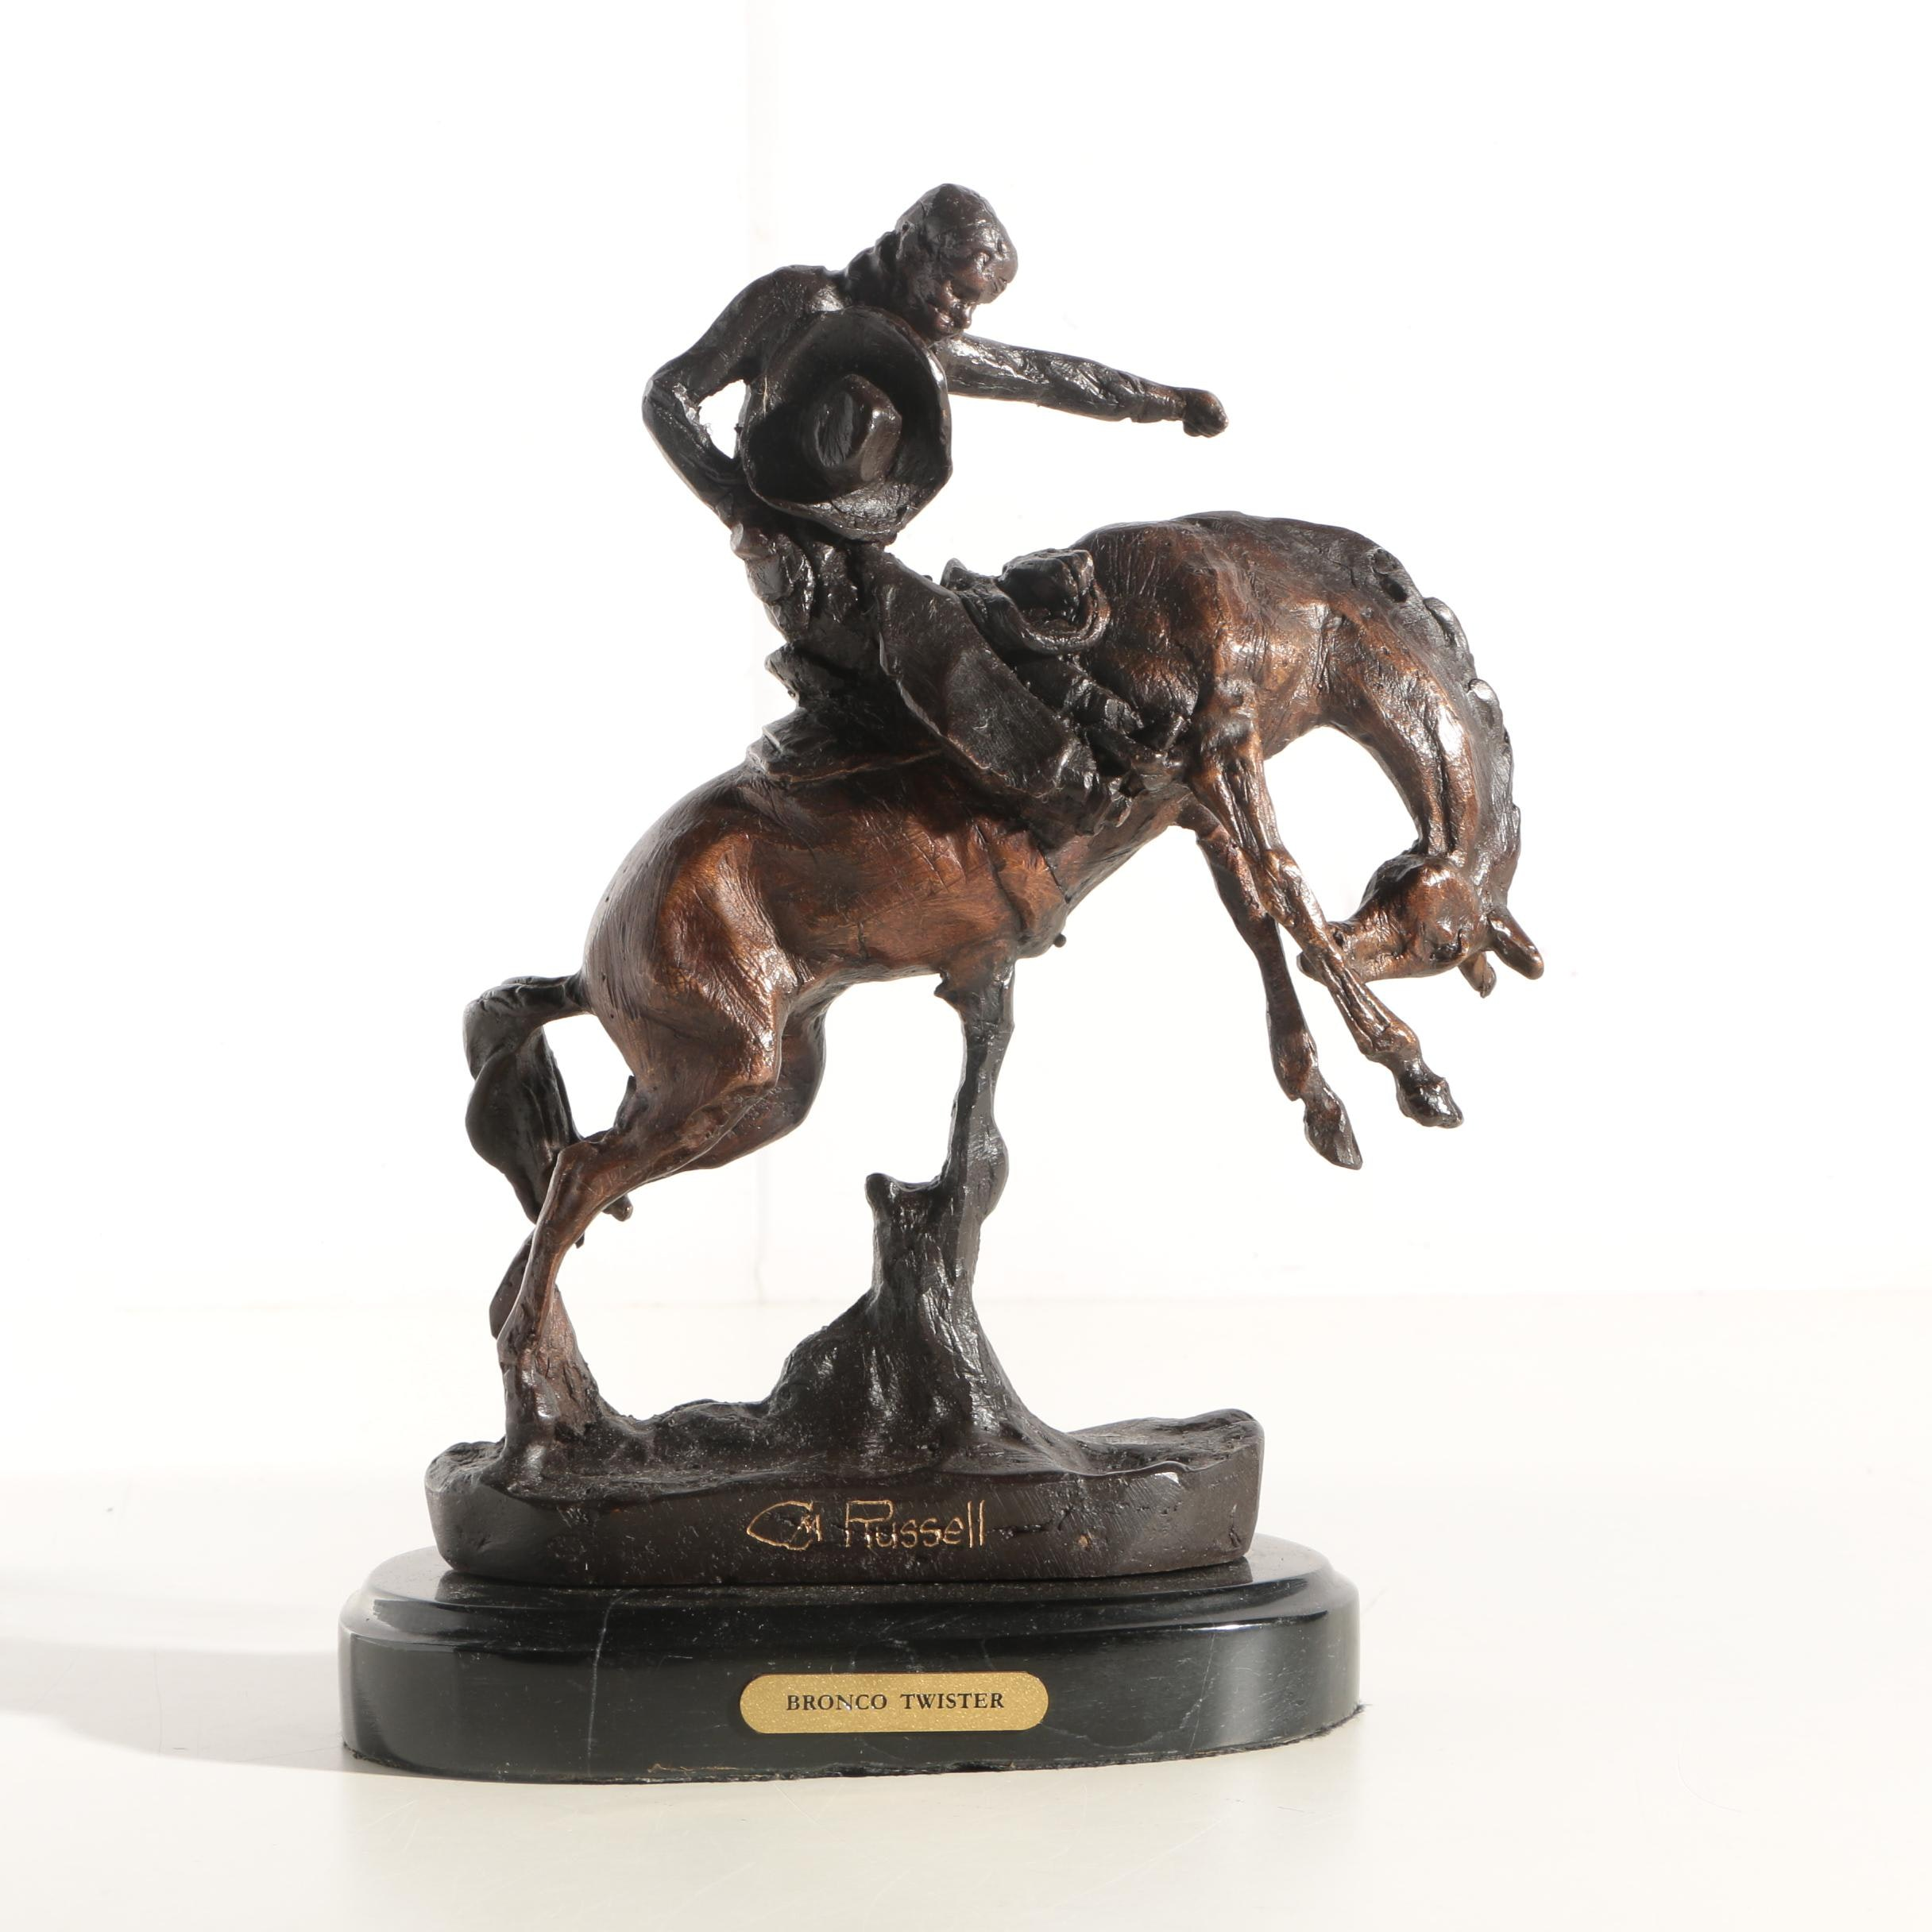 """Reproduction Metal Sculpture After C.M. Russell """"Bronco Twister"""""""